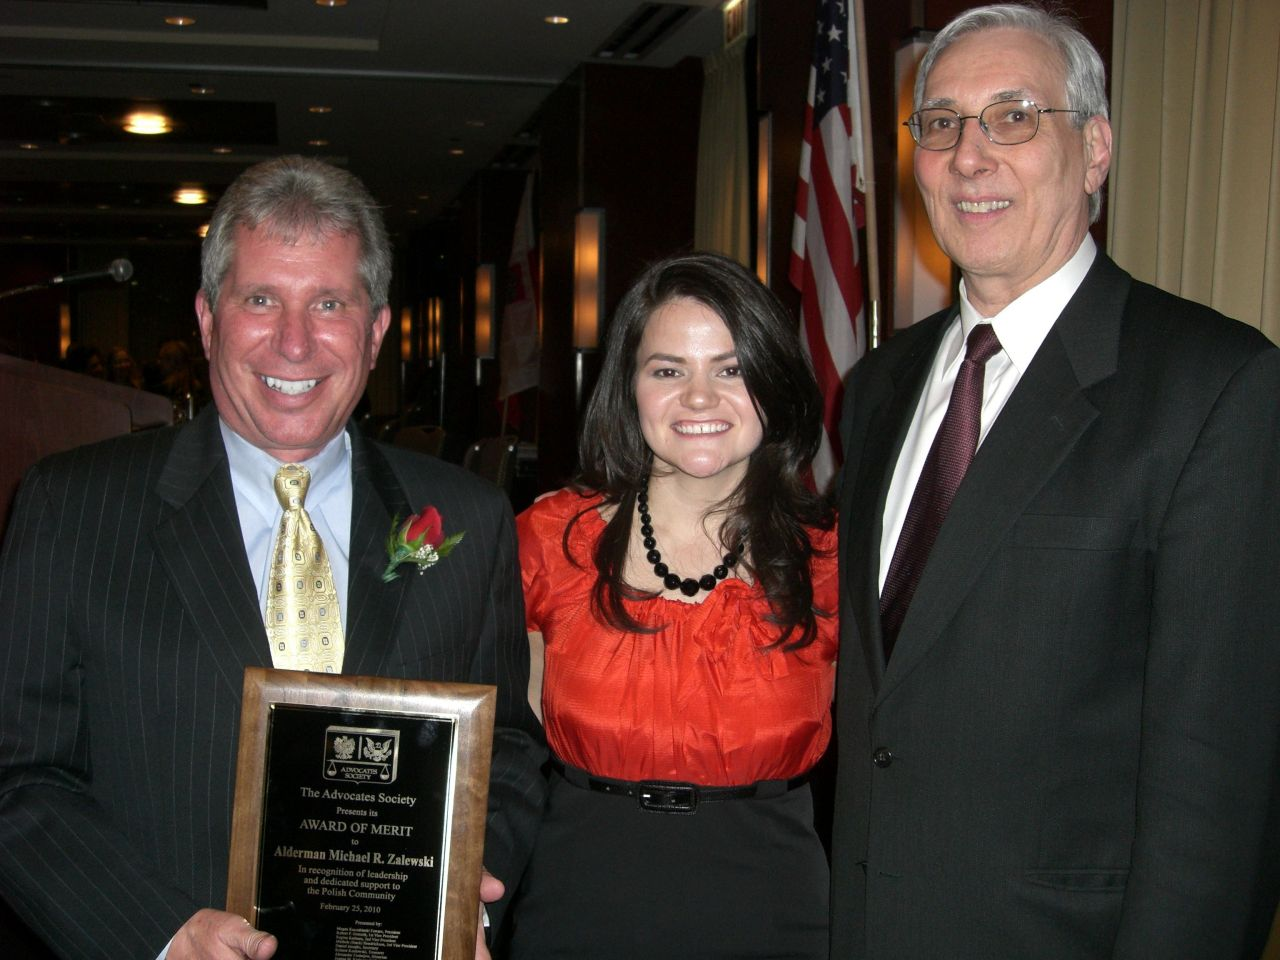 The Honorable Michael Zalewski, Alderman-23rd Ward and Advocates Society Award of Merit Honoree, Megan Kaszubinski Ferraro, newly installed Advocates Society President, and Mark Kupiec, Advocates Society member.